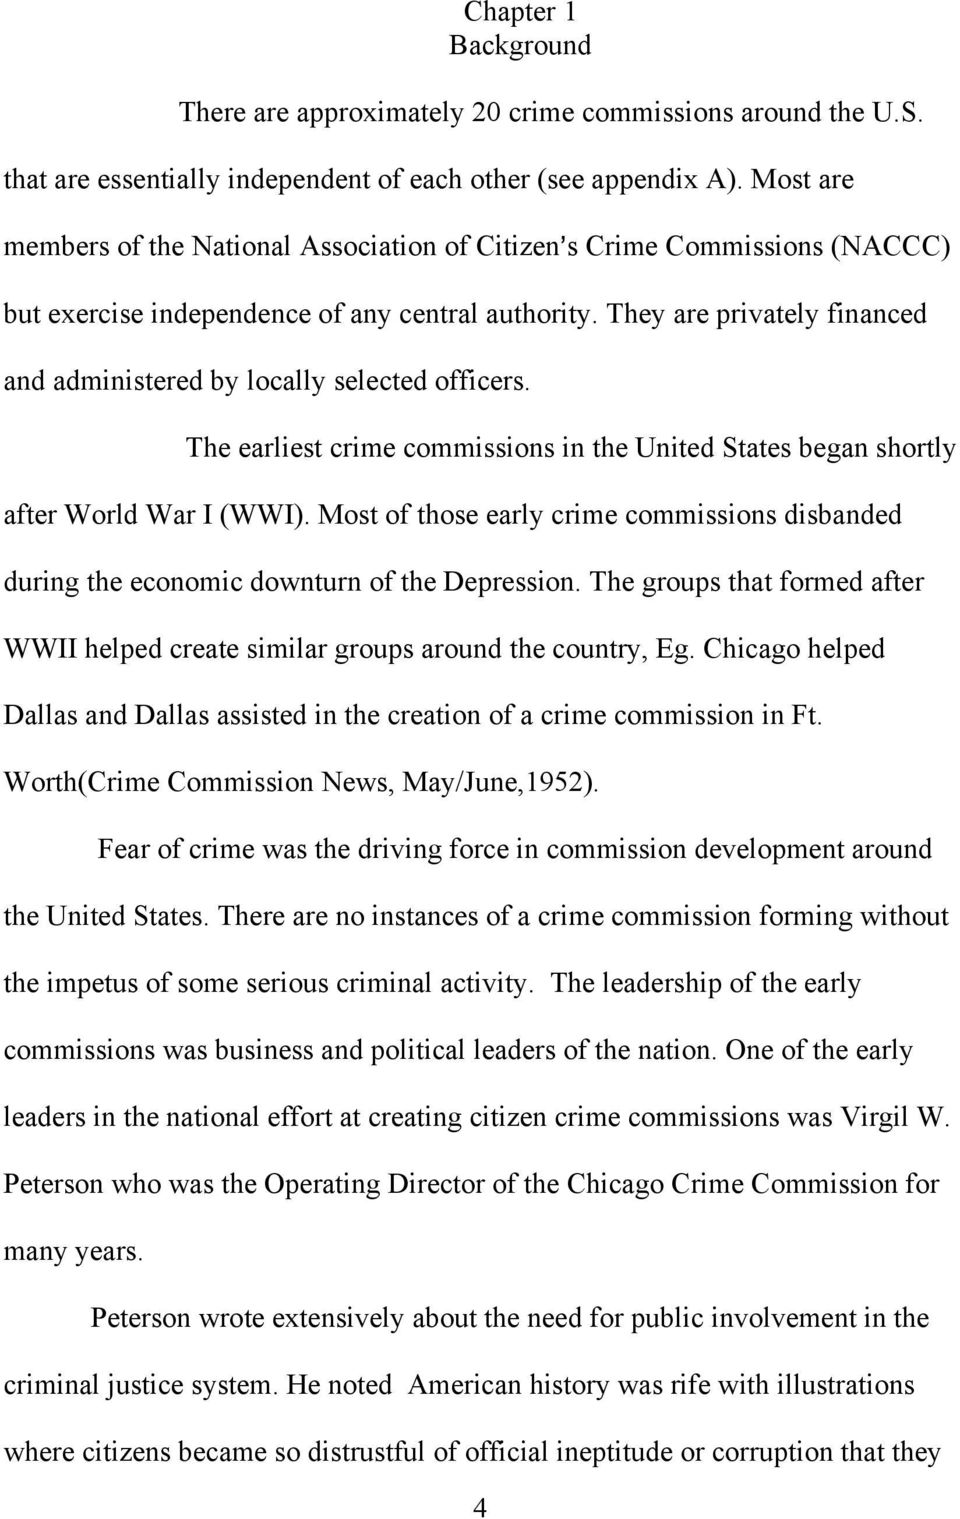 They are privately financed and administered by locally selected officers. The earliest crime commissions in the United States began shortly after World War I (WWI).